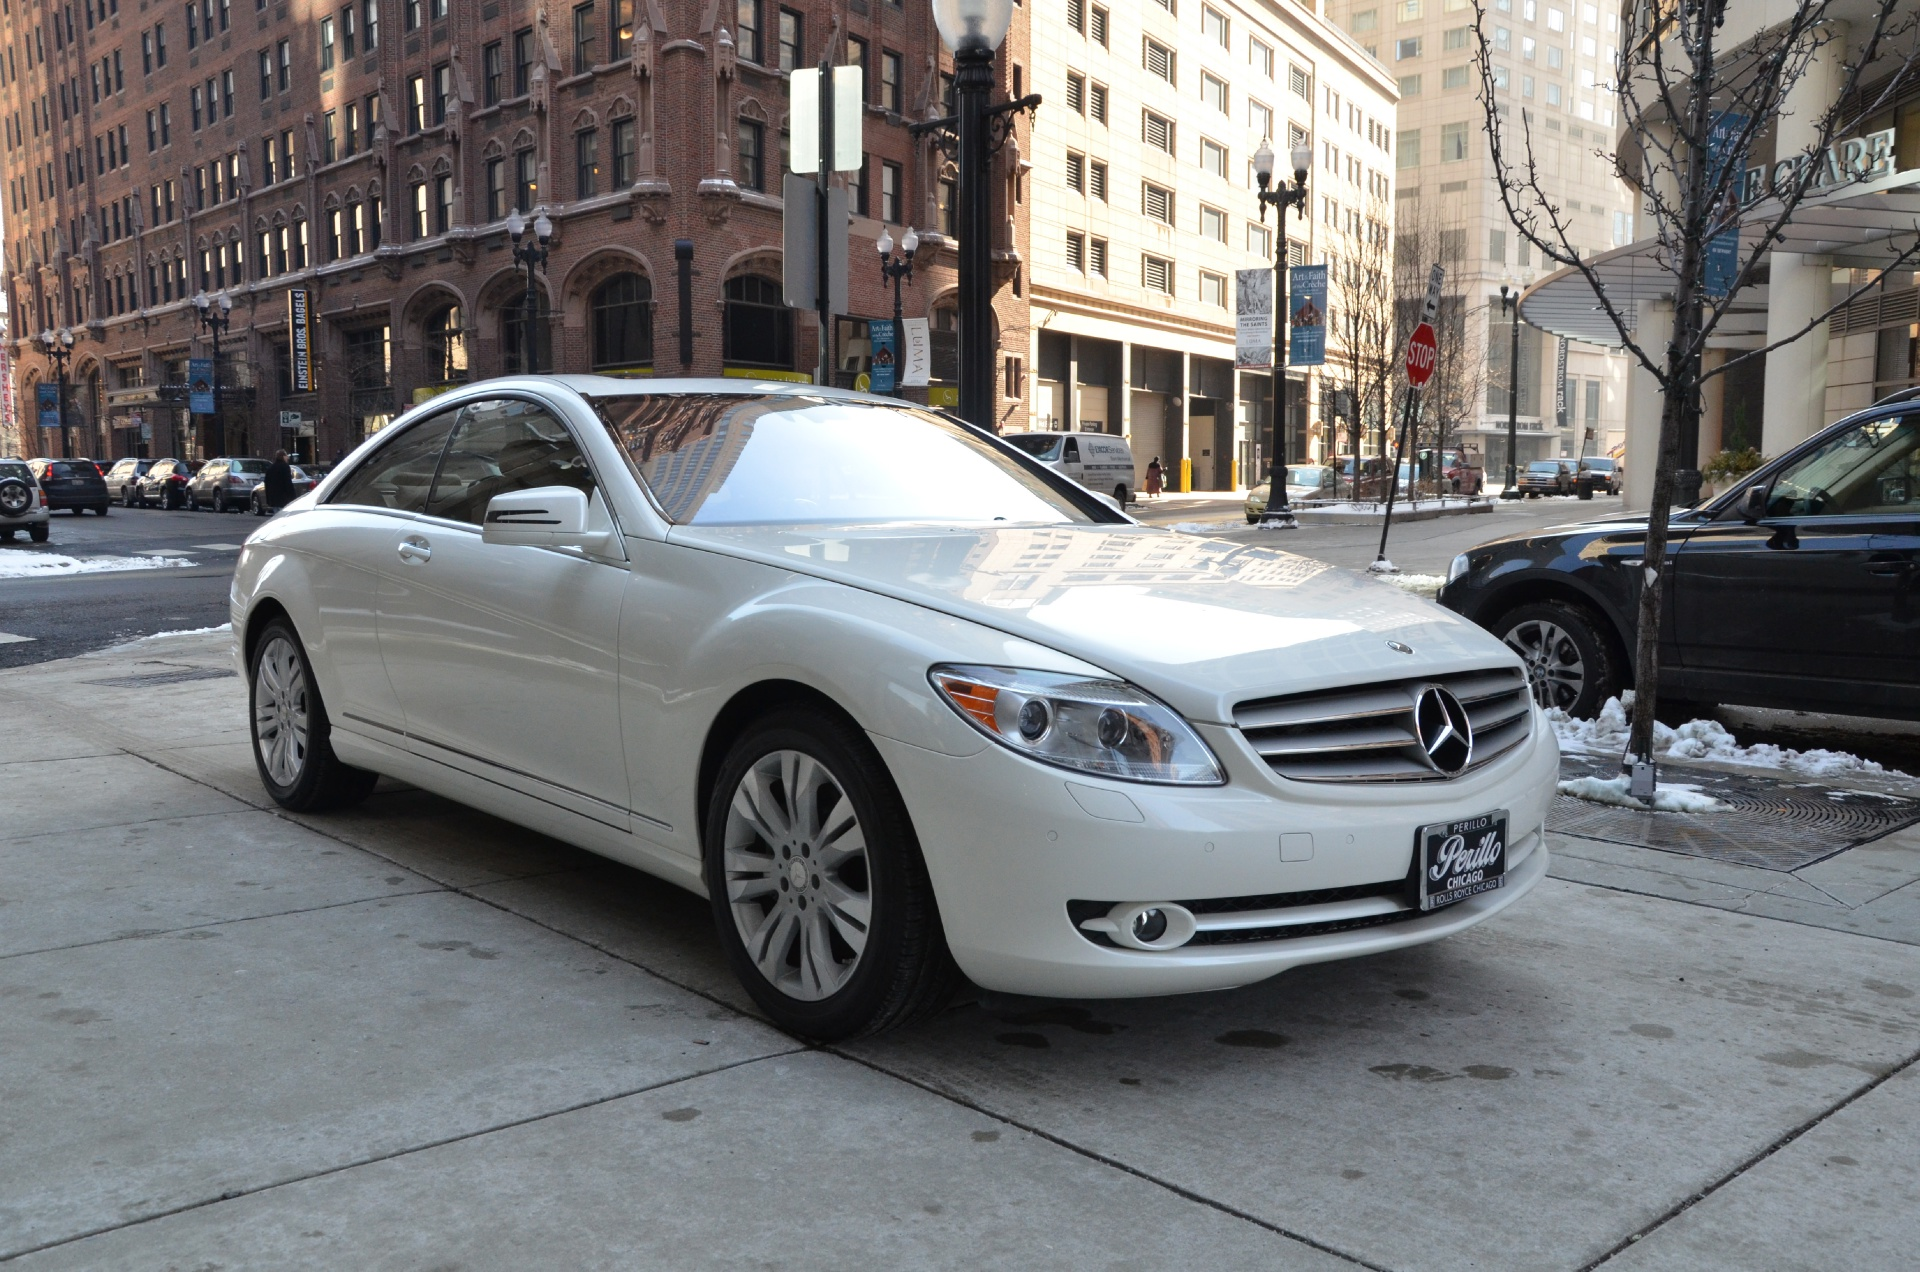 2010 mercedes benz cl class cl550 4matic stock 24181 for for Mercedes benz dealerships in chicago area